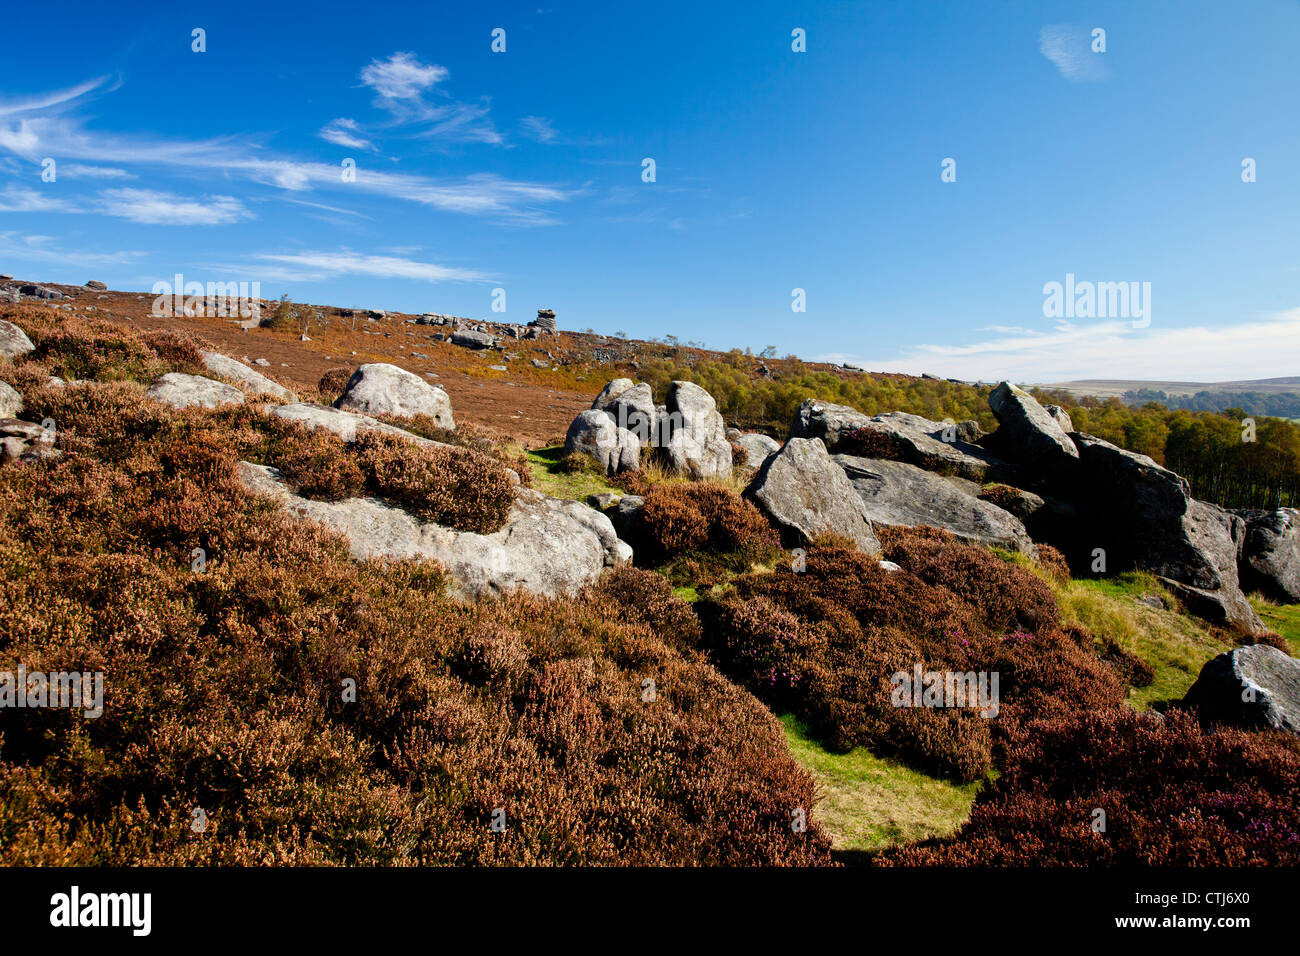 Mother Cap - an isolated millstone grit pillar in the Peak District National Park Derbyshire England UK - Stock Image